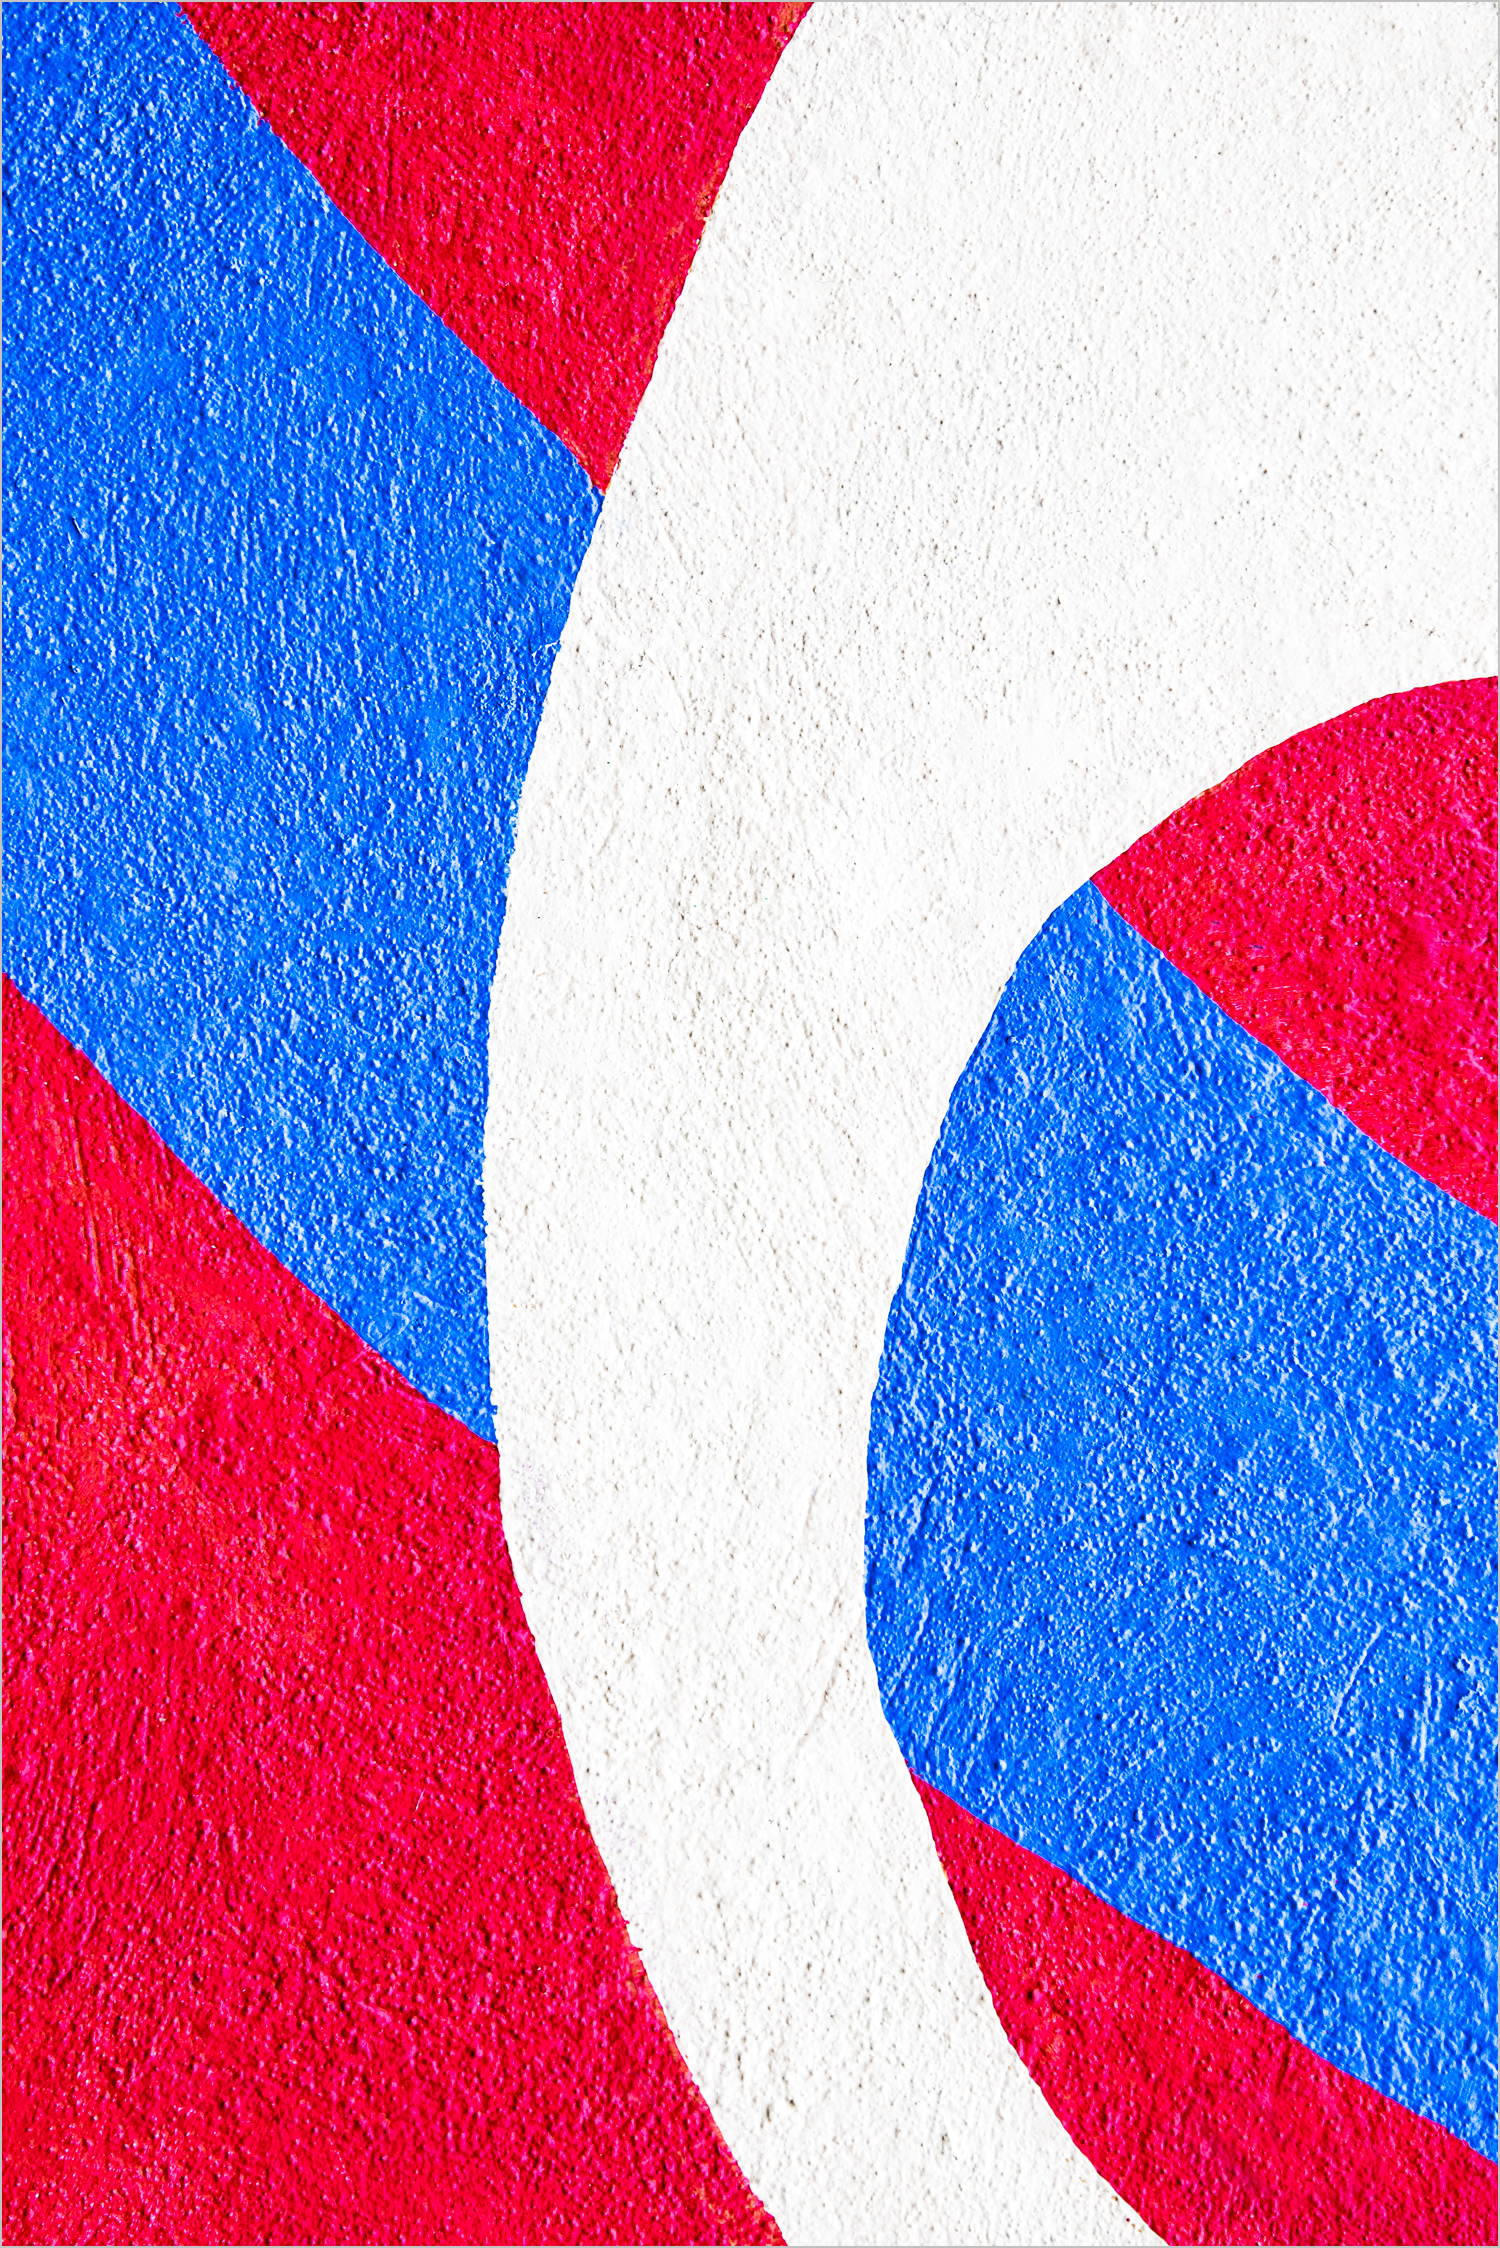 Mural Abstract 5    © Howard Grill